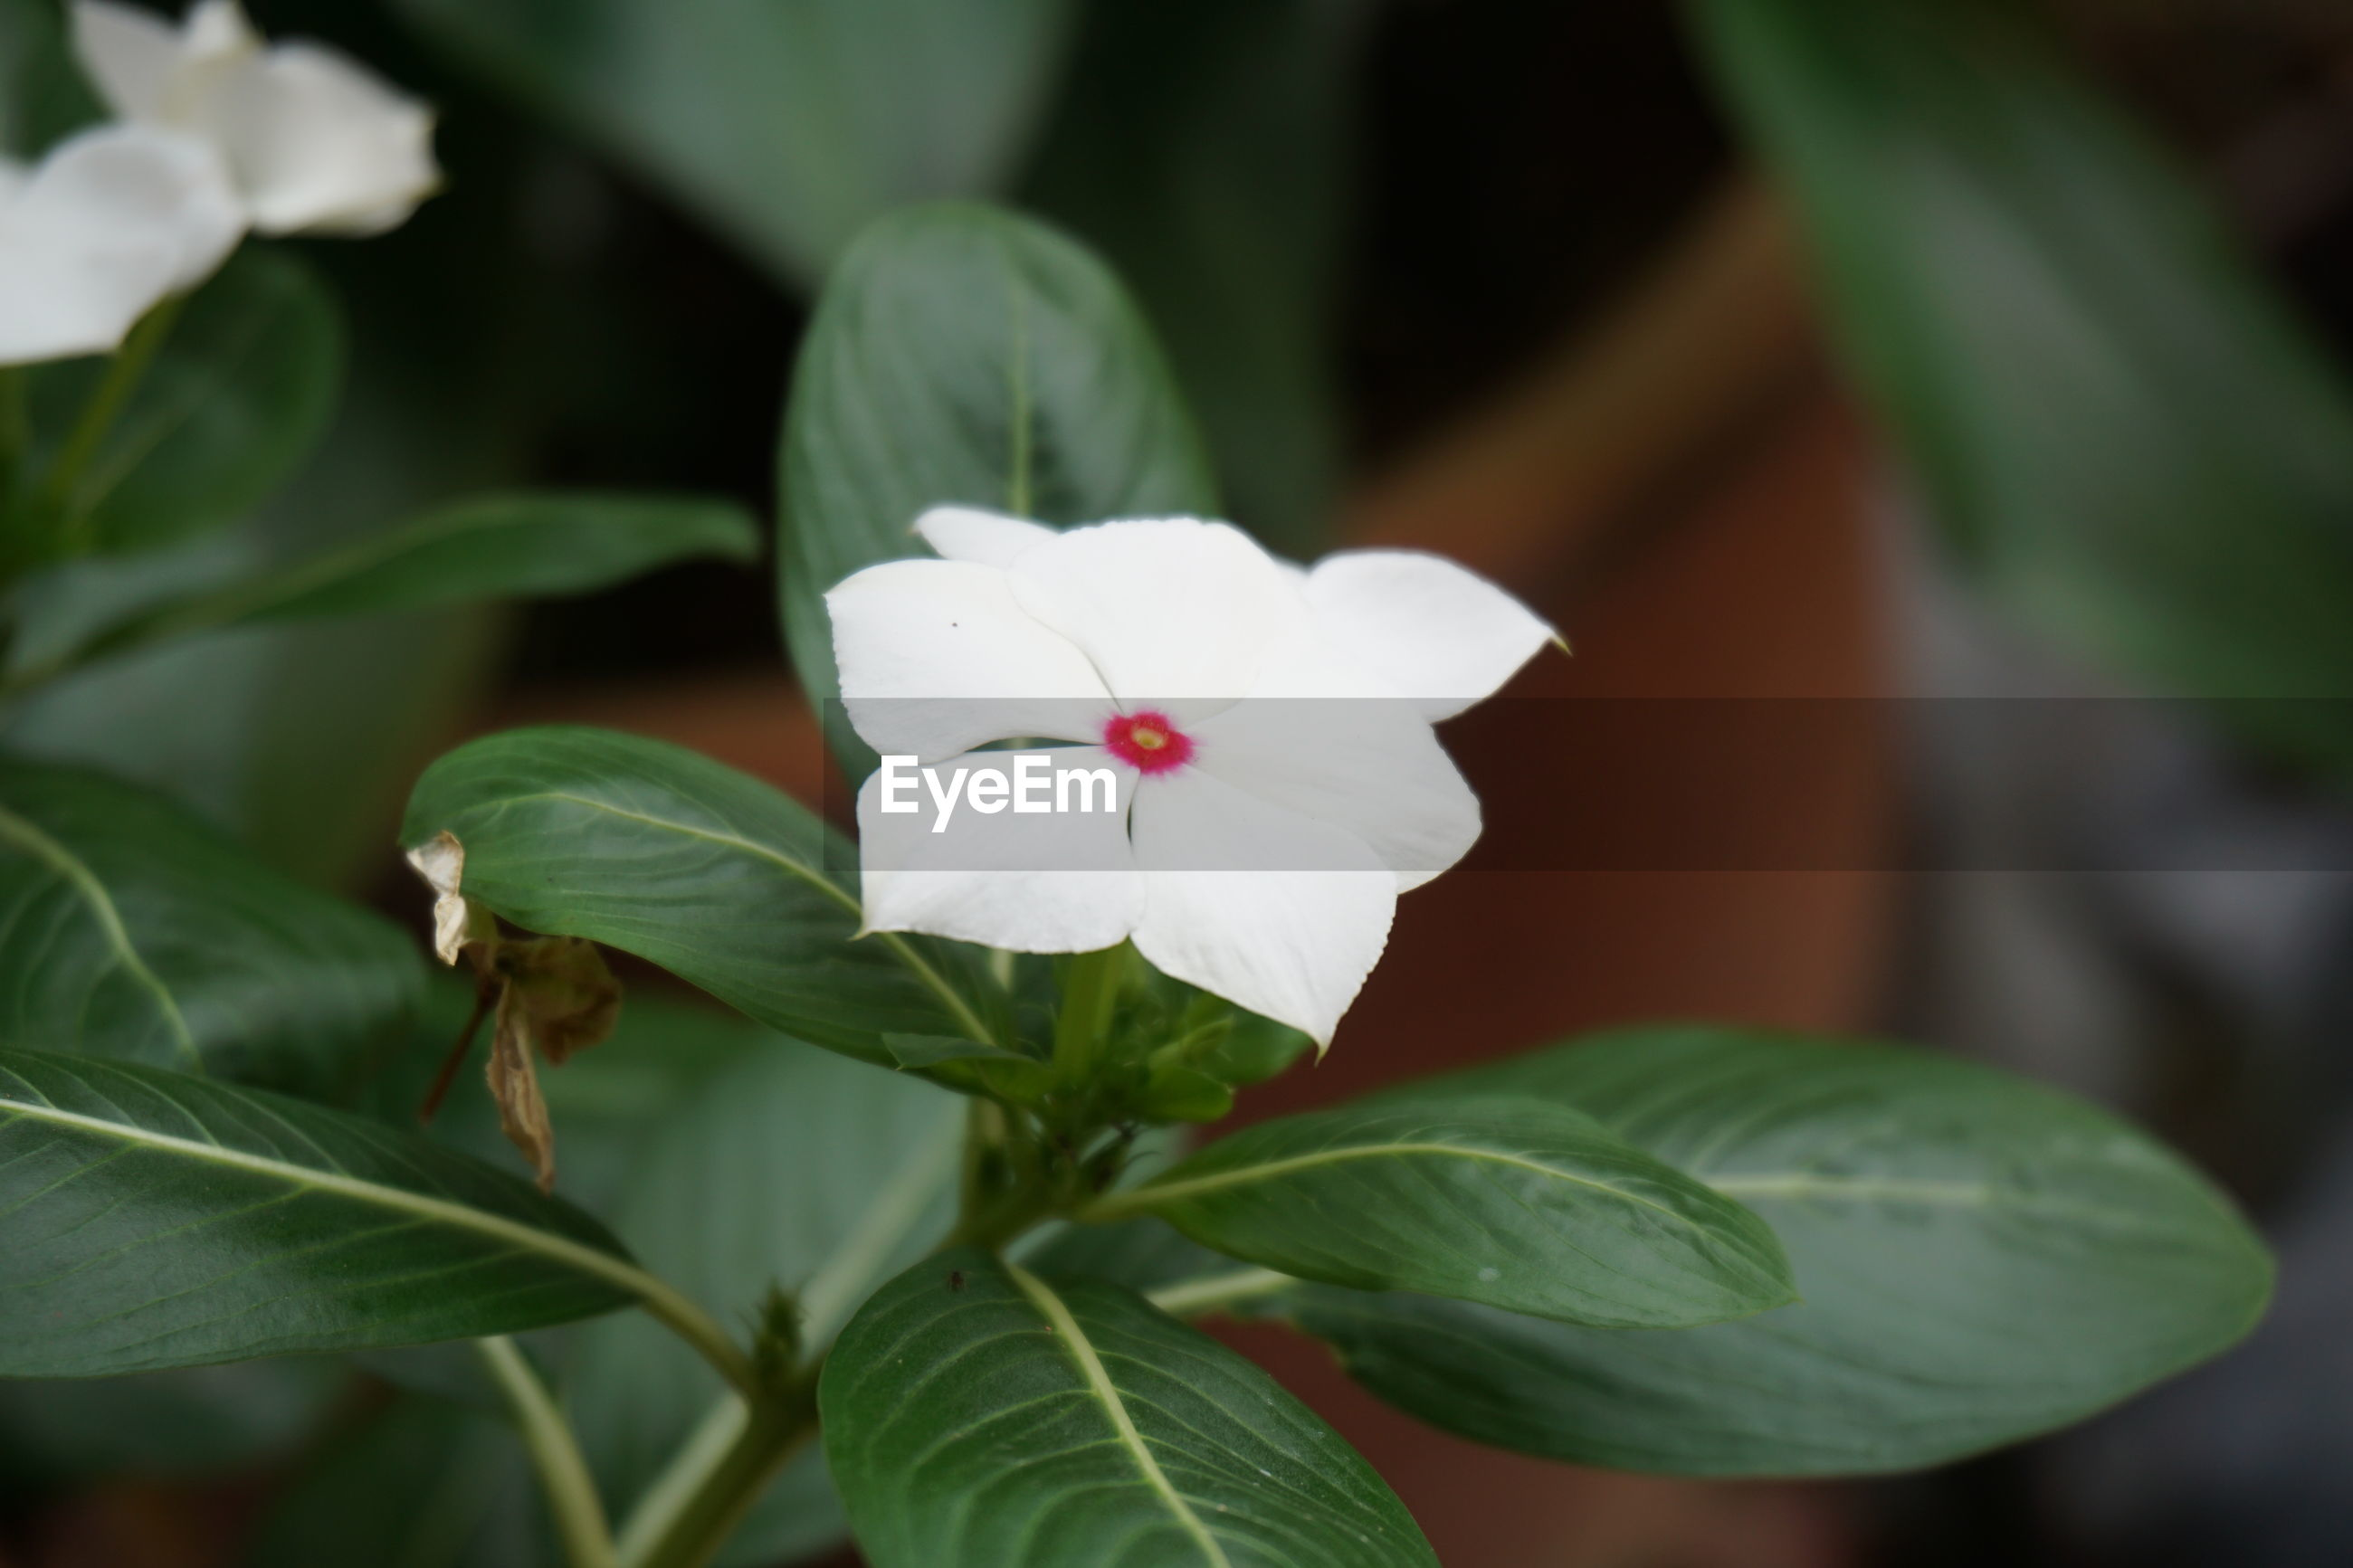 CLOSE-UP OF FRESH WHITE FLOWER BLOOMING IN PLANT